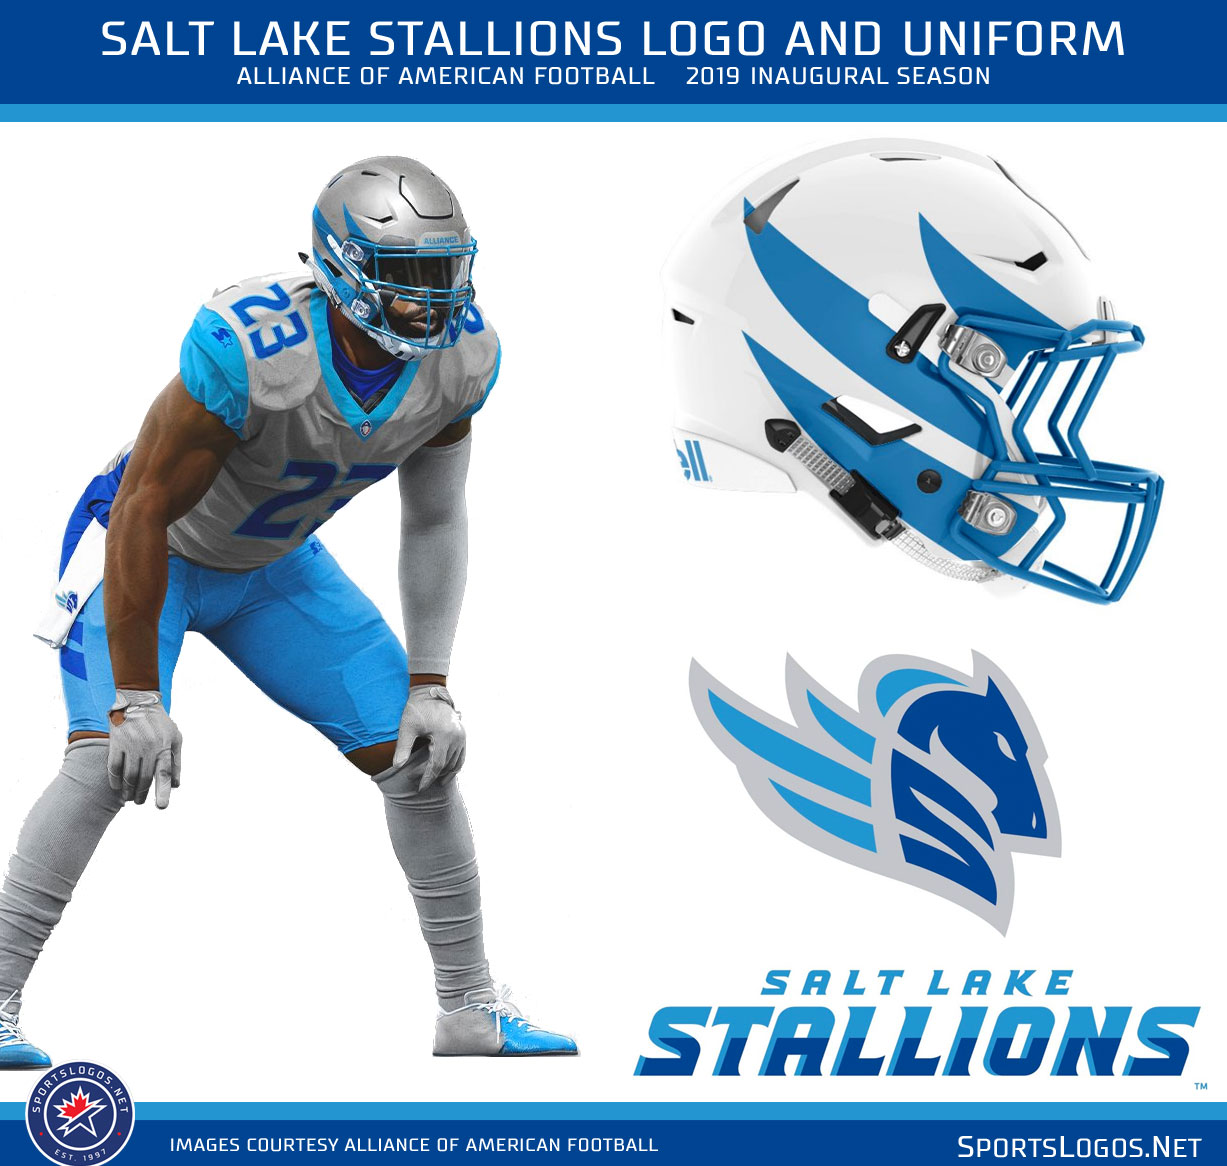 Salt-Lake-Stallions-AAF-Uniforms-2019.jpg